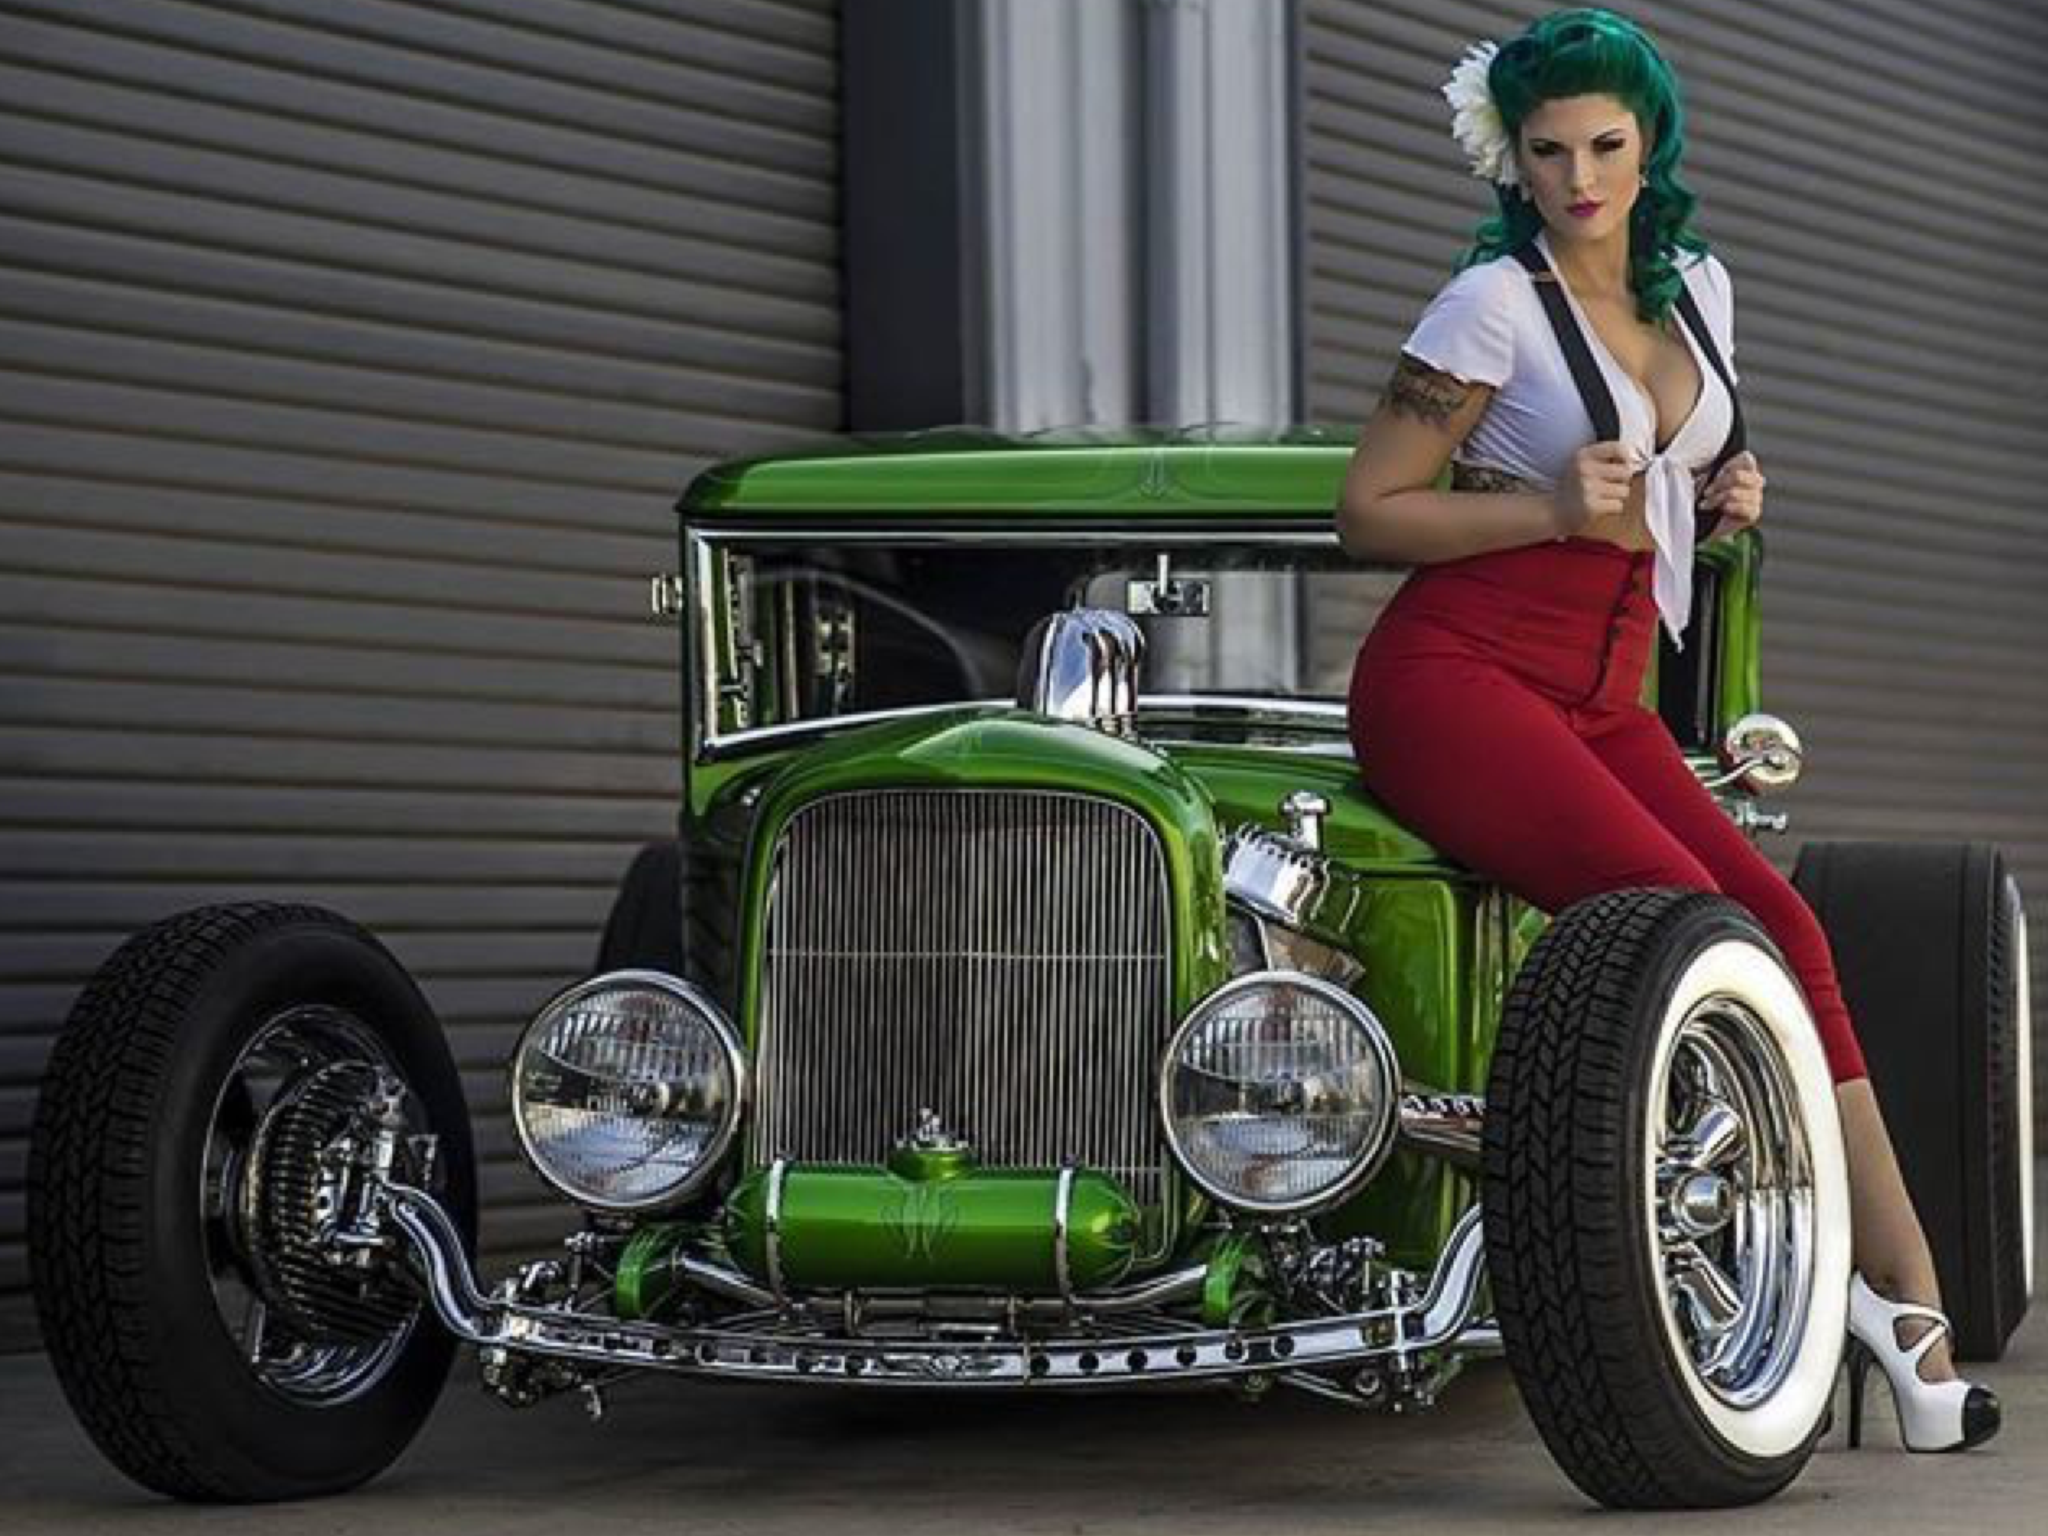 Hot rods and pimped girls — photo 7